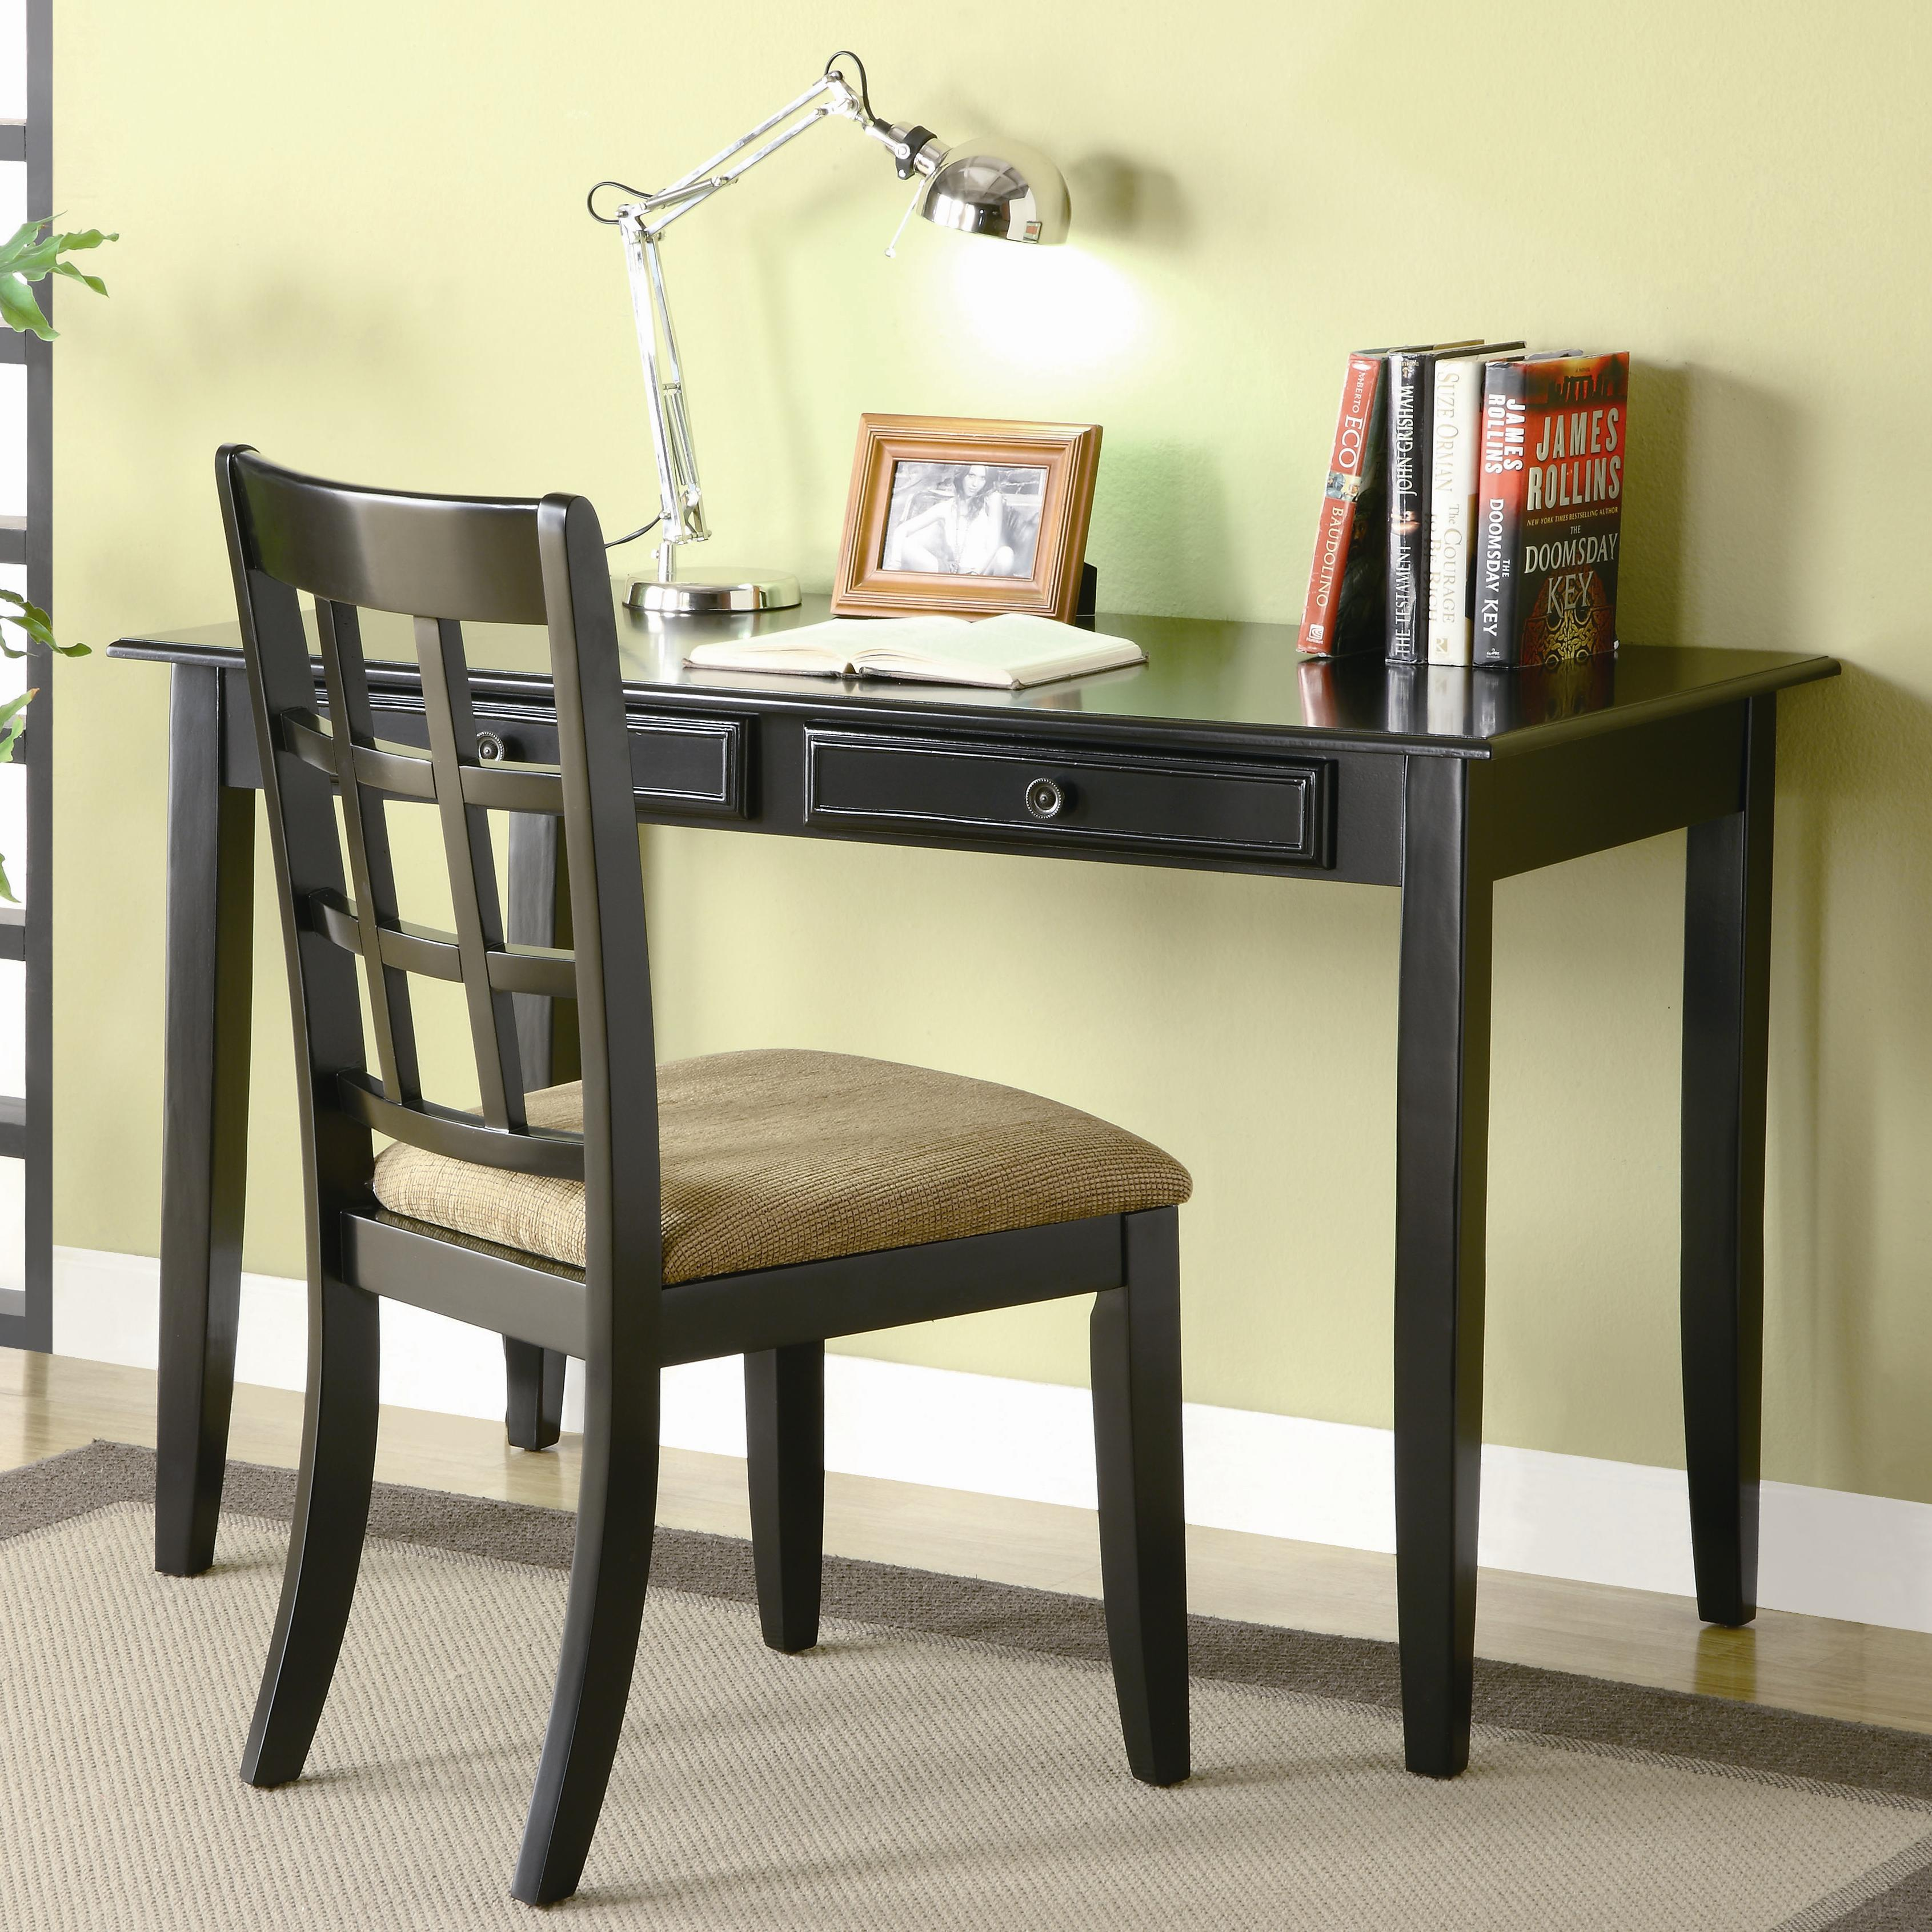 Coaster Desks 2 Piece Desk Set - Item Number: 800779